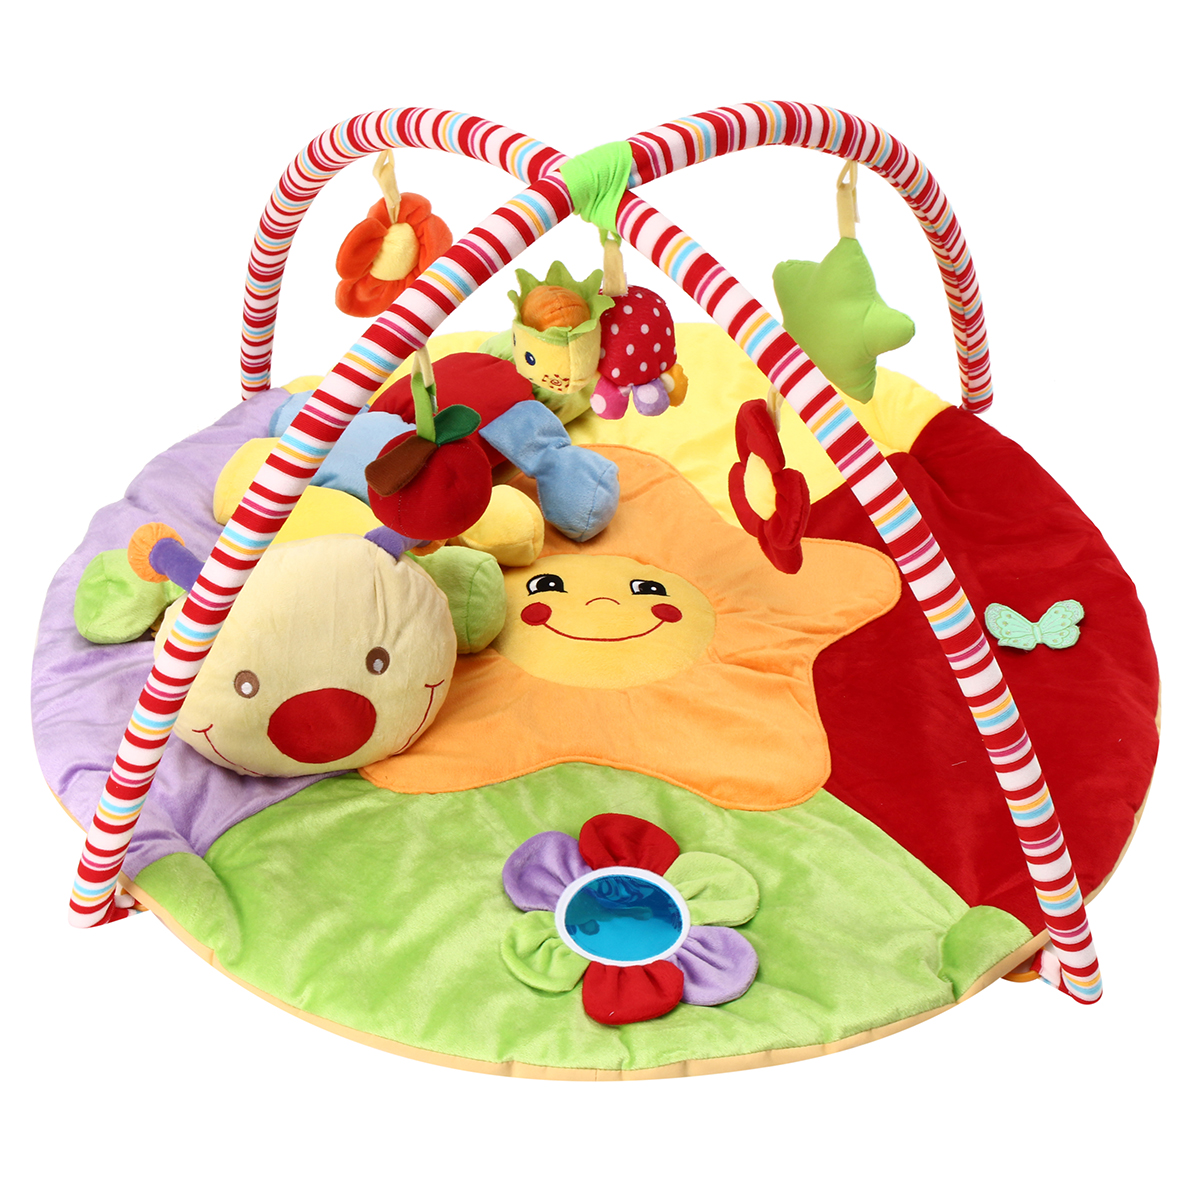 Rainforest Musical Play Soft Mat Activity Play Gym Baby Gift Toy Bedroom Decor !